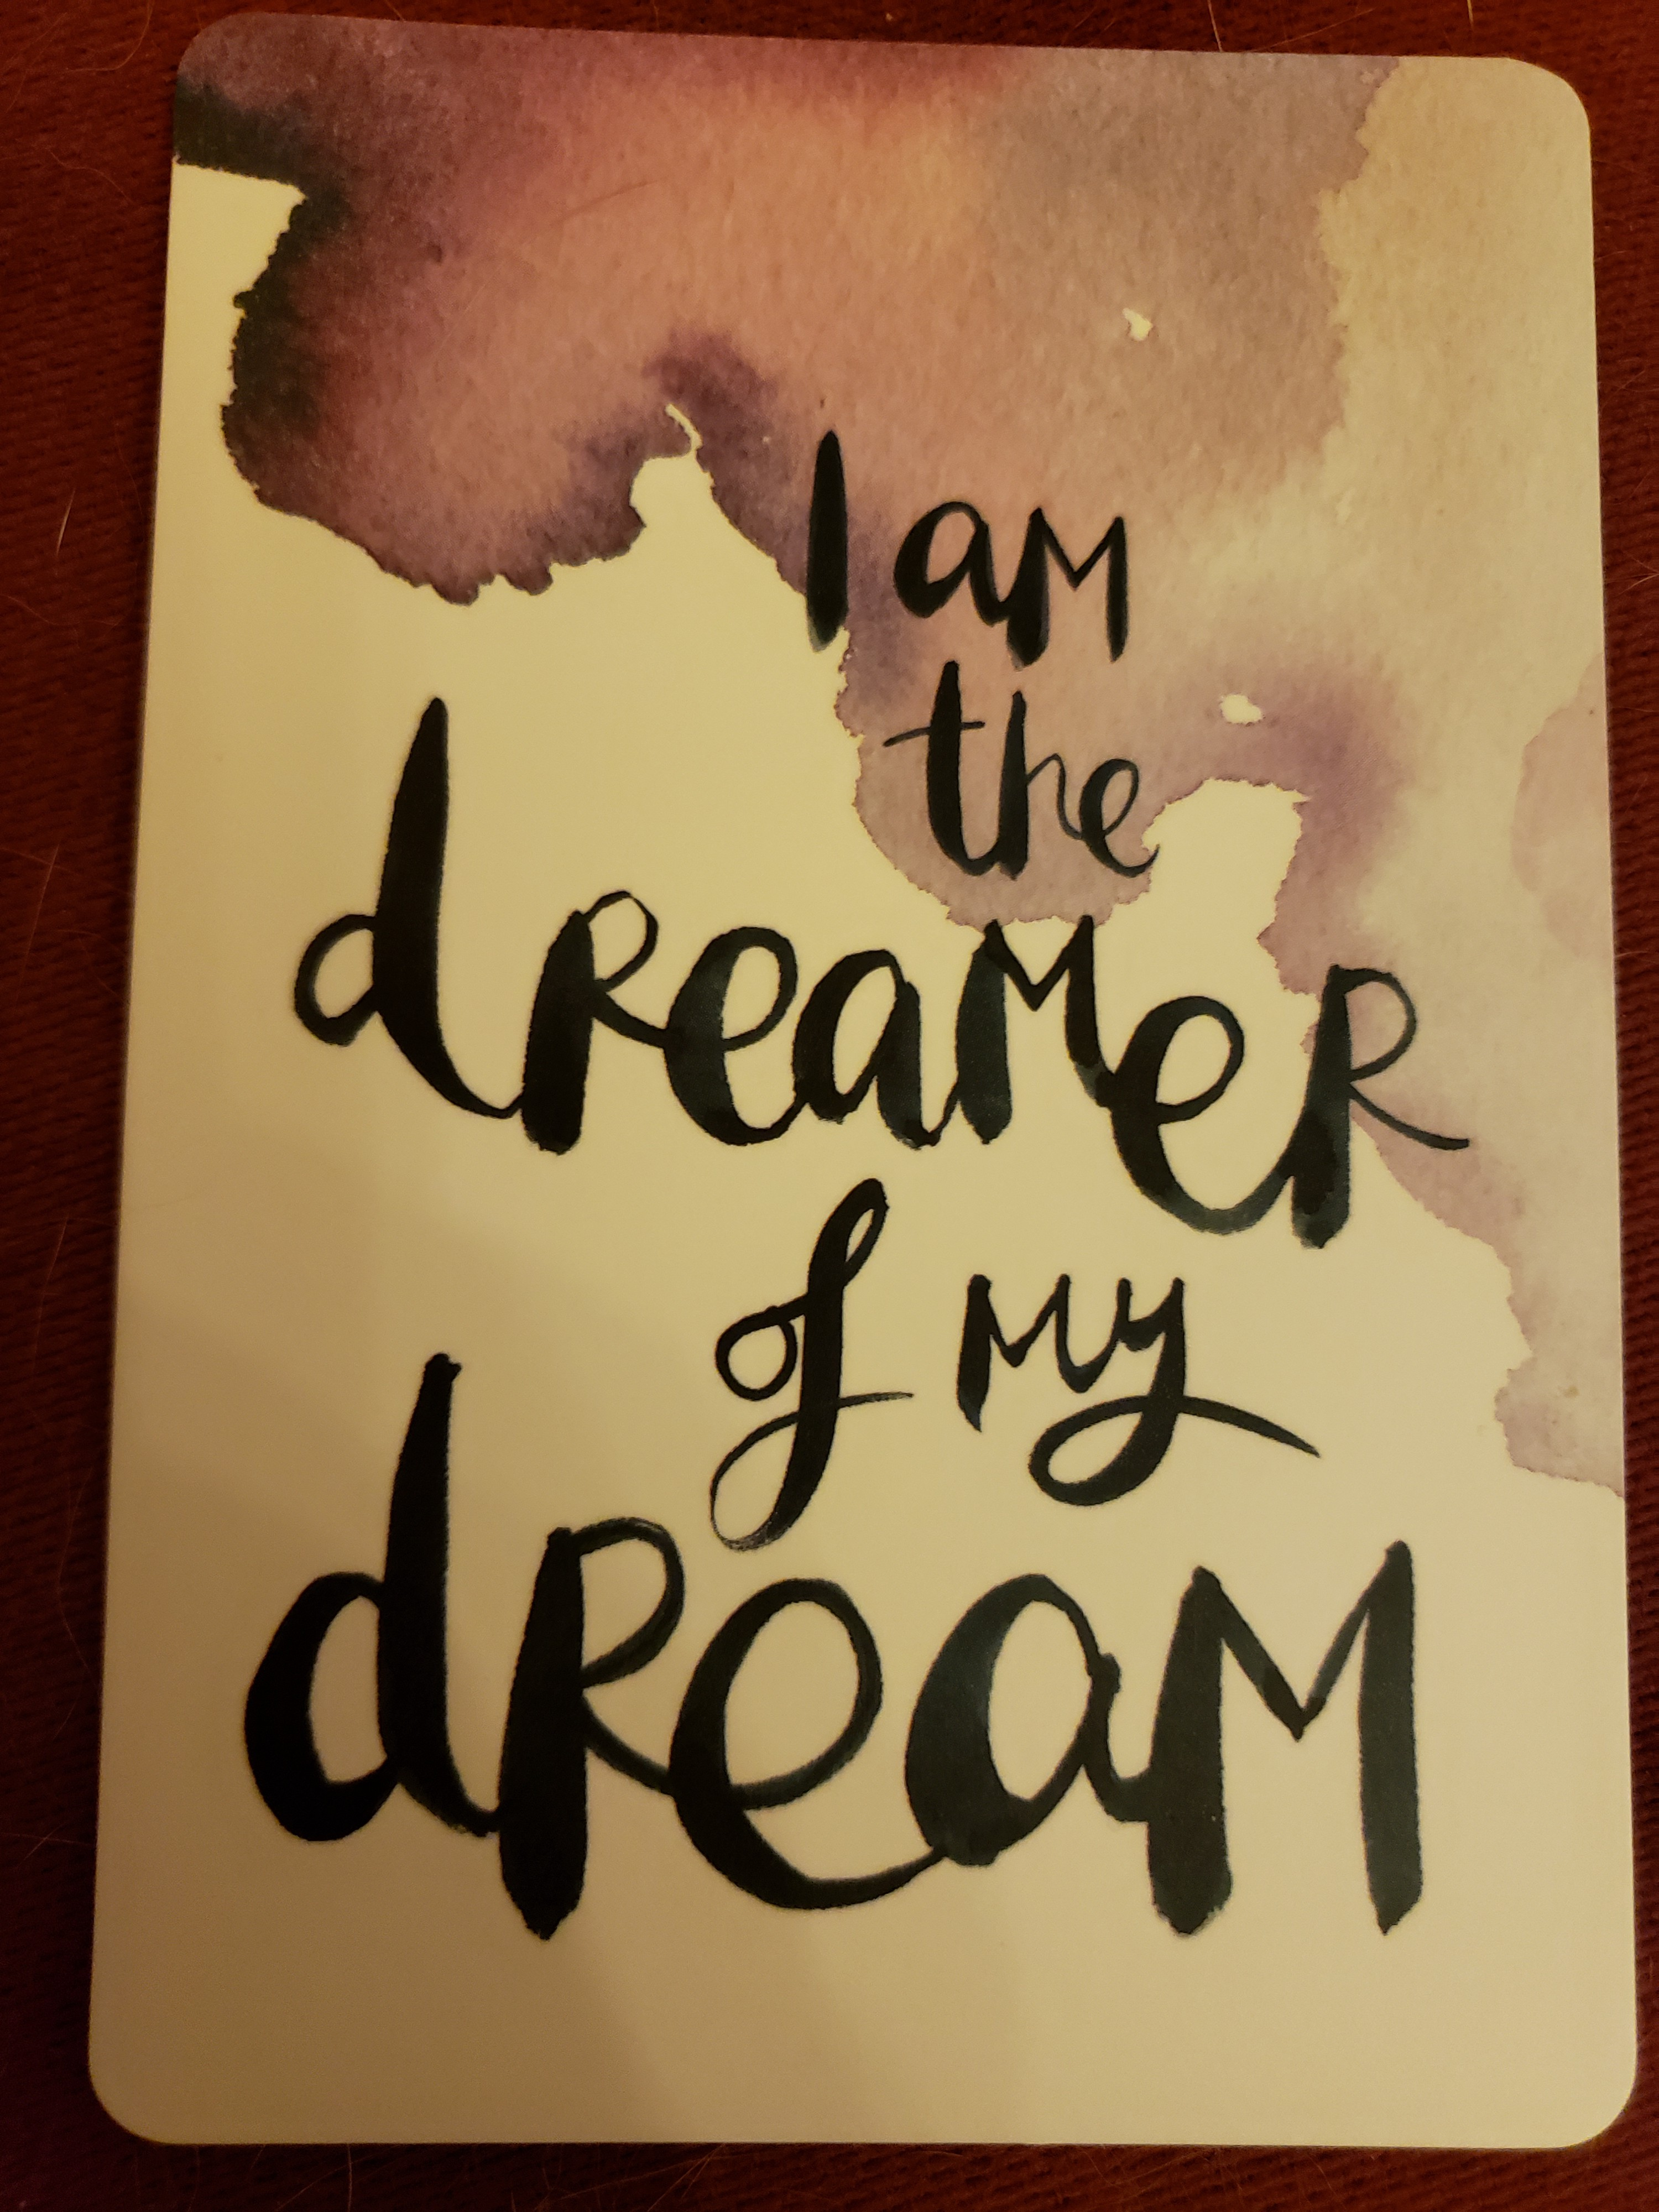 I am the dreamer of my dream